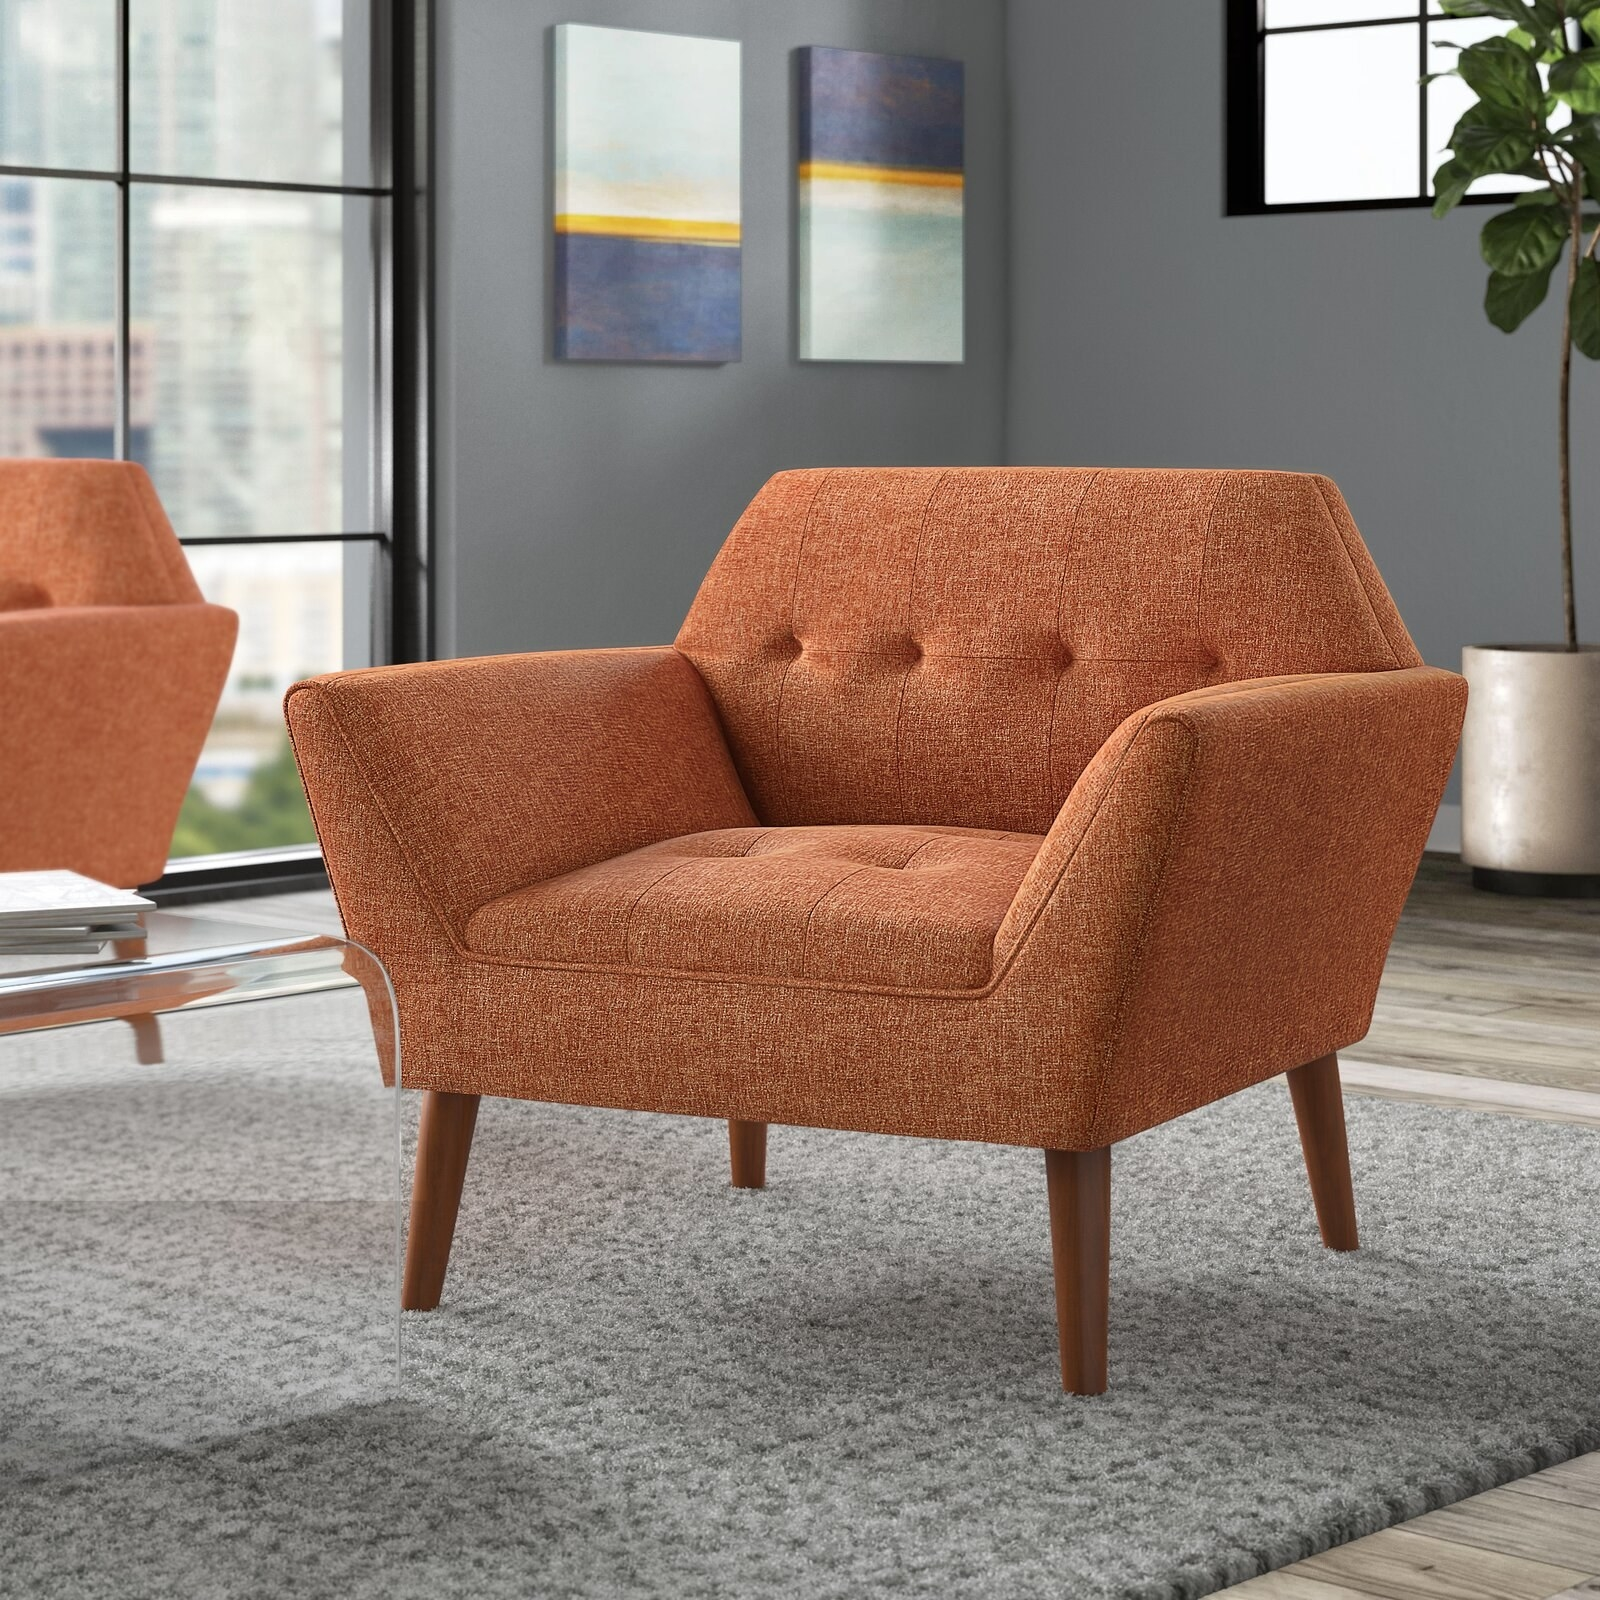 The chair, which has a hexagonal back panel and wooden splayed legs, in orange